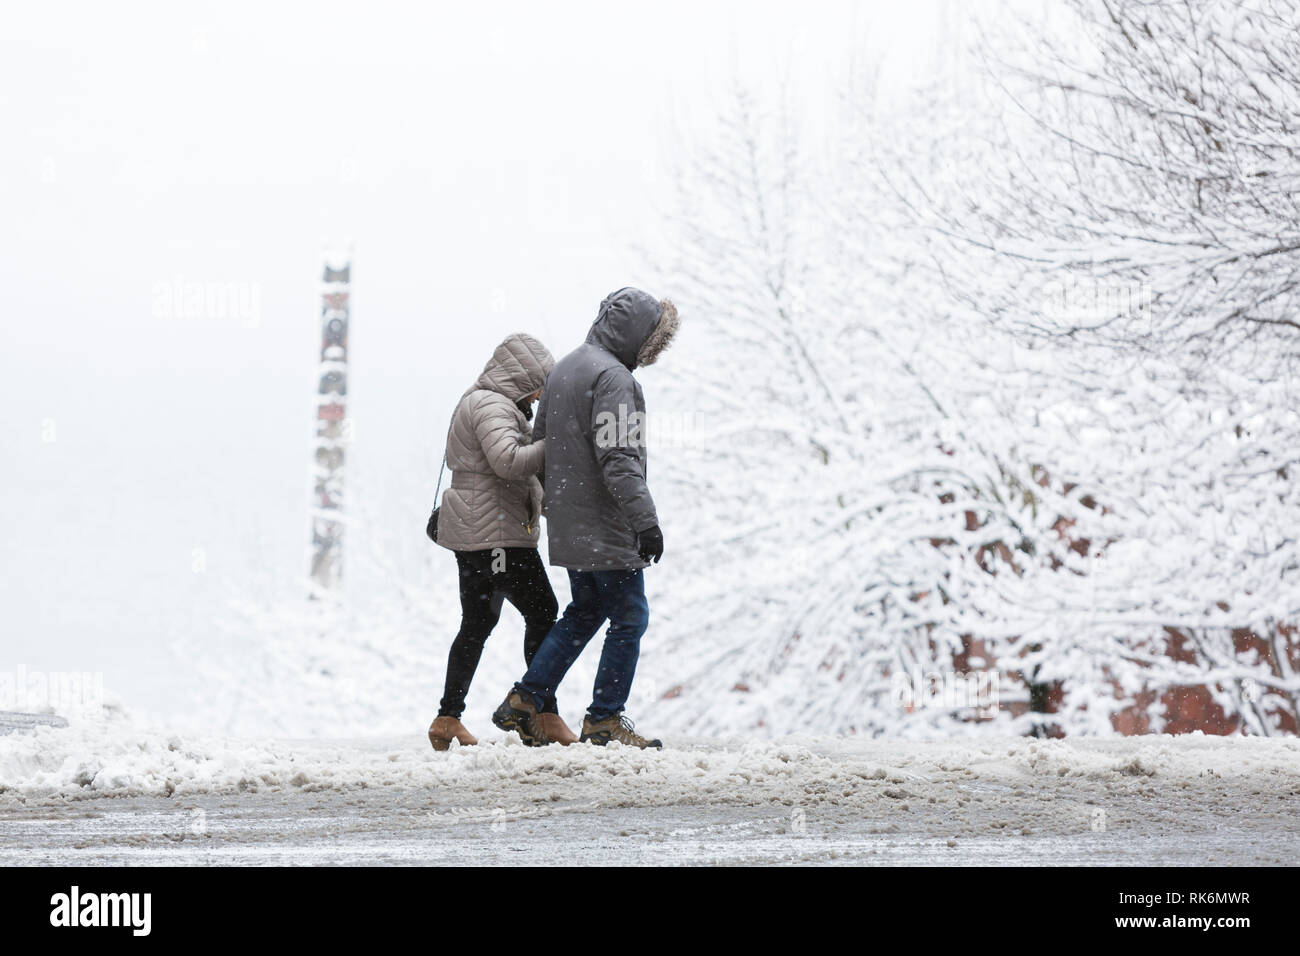 Washington, USA. 9th Feb 2019. A couple crosses Virginia Street as a strong winter storm blankets Seattle in six inches of snow. In the distance is a cedar totem from Victor Steinbrueck Park. Credit: Paul Christian Gordon/Alamy Live News Stock Photo